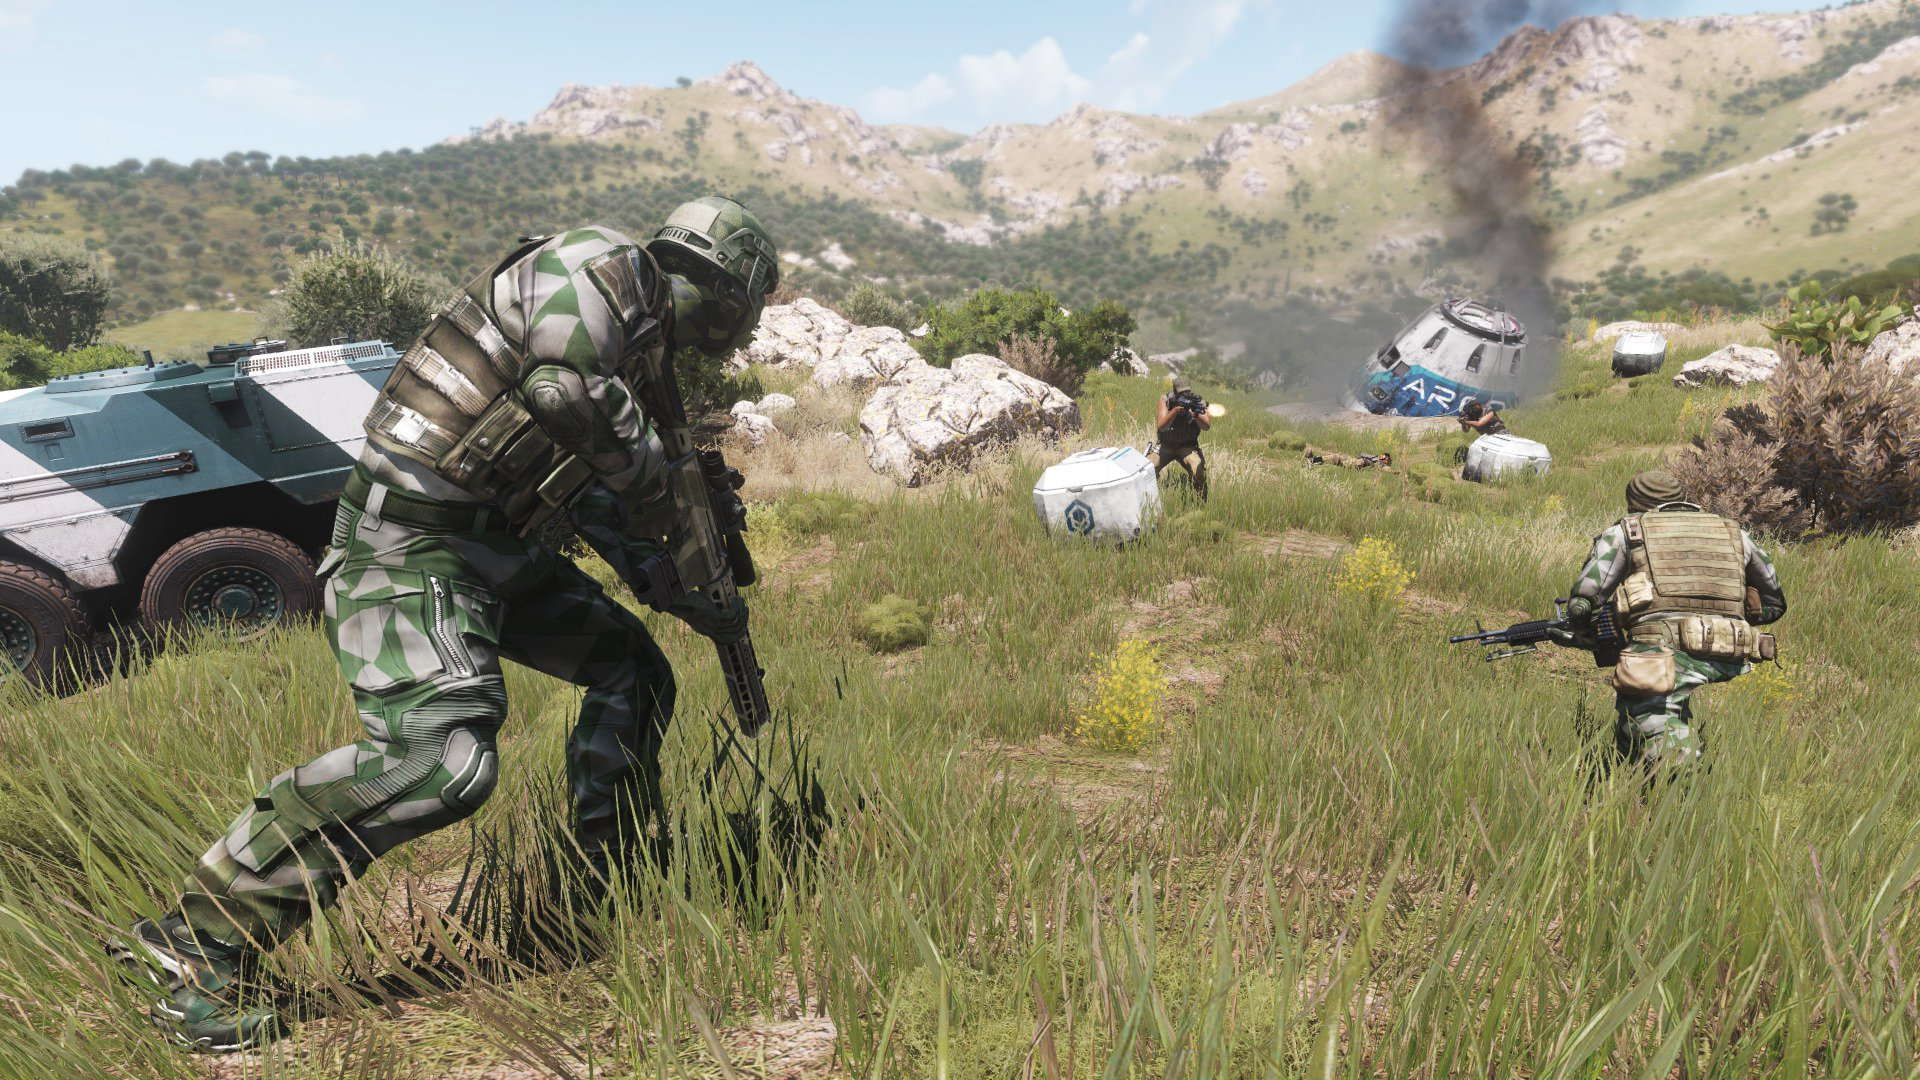 Bohemia's new tactical shooter Argo launches for free in June screenshot